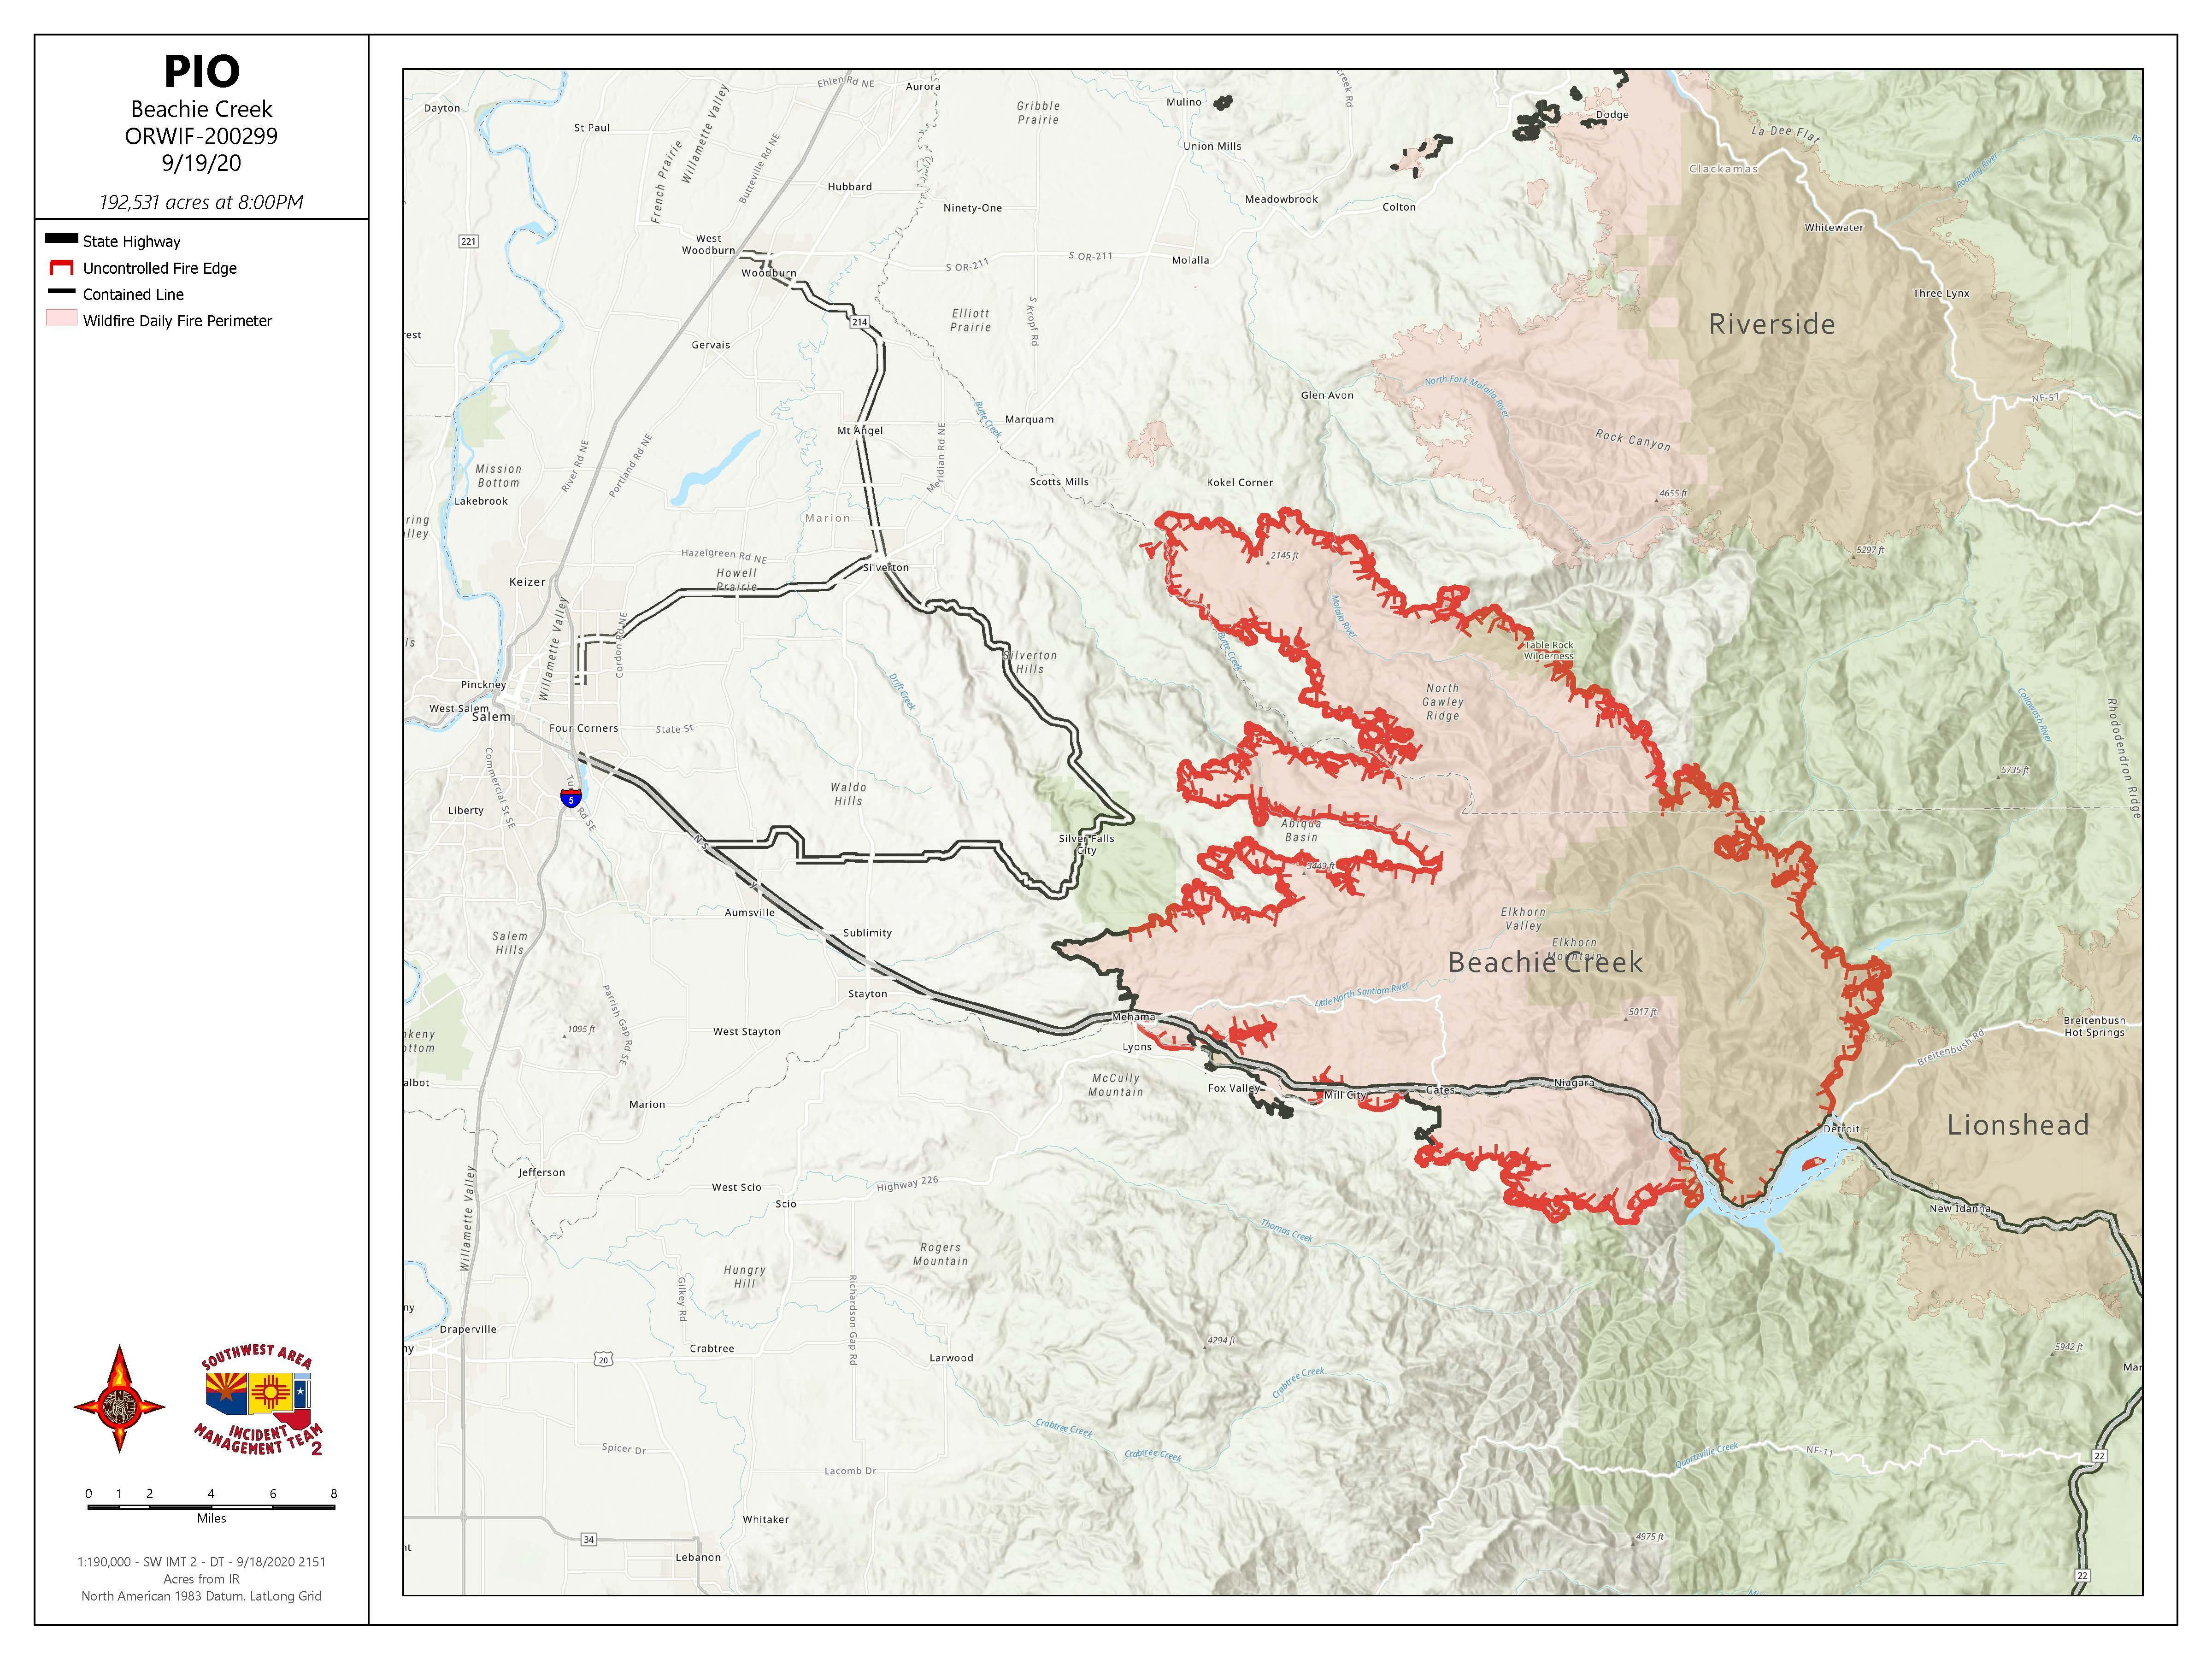 Aerial Image of Beachy Creek Fire area